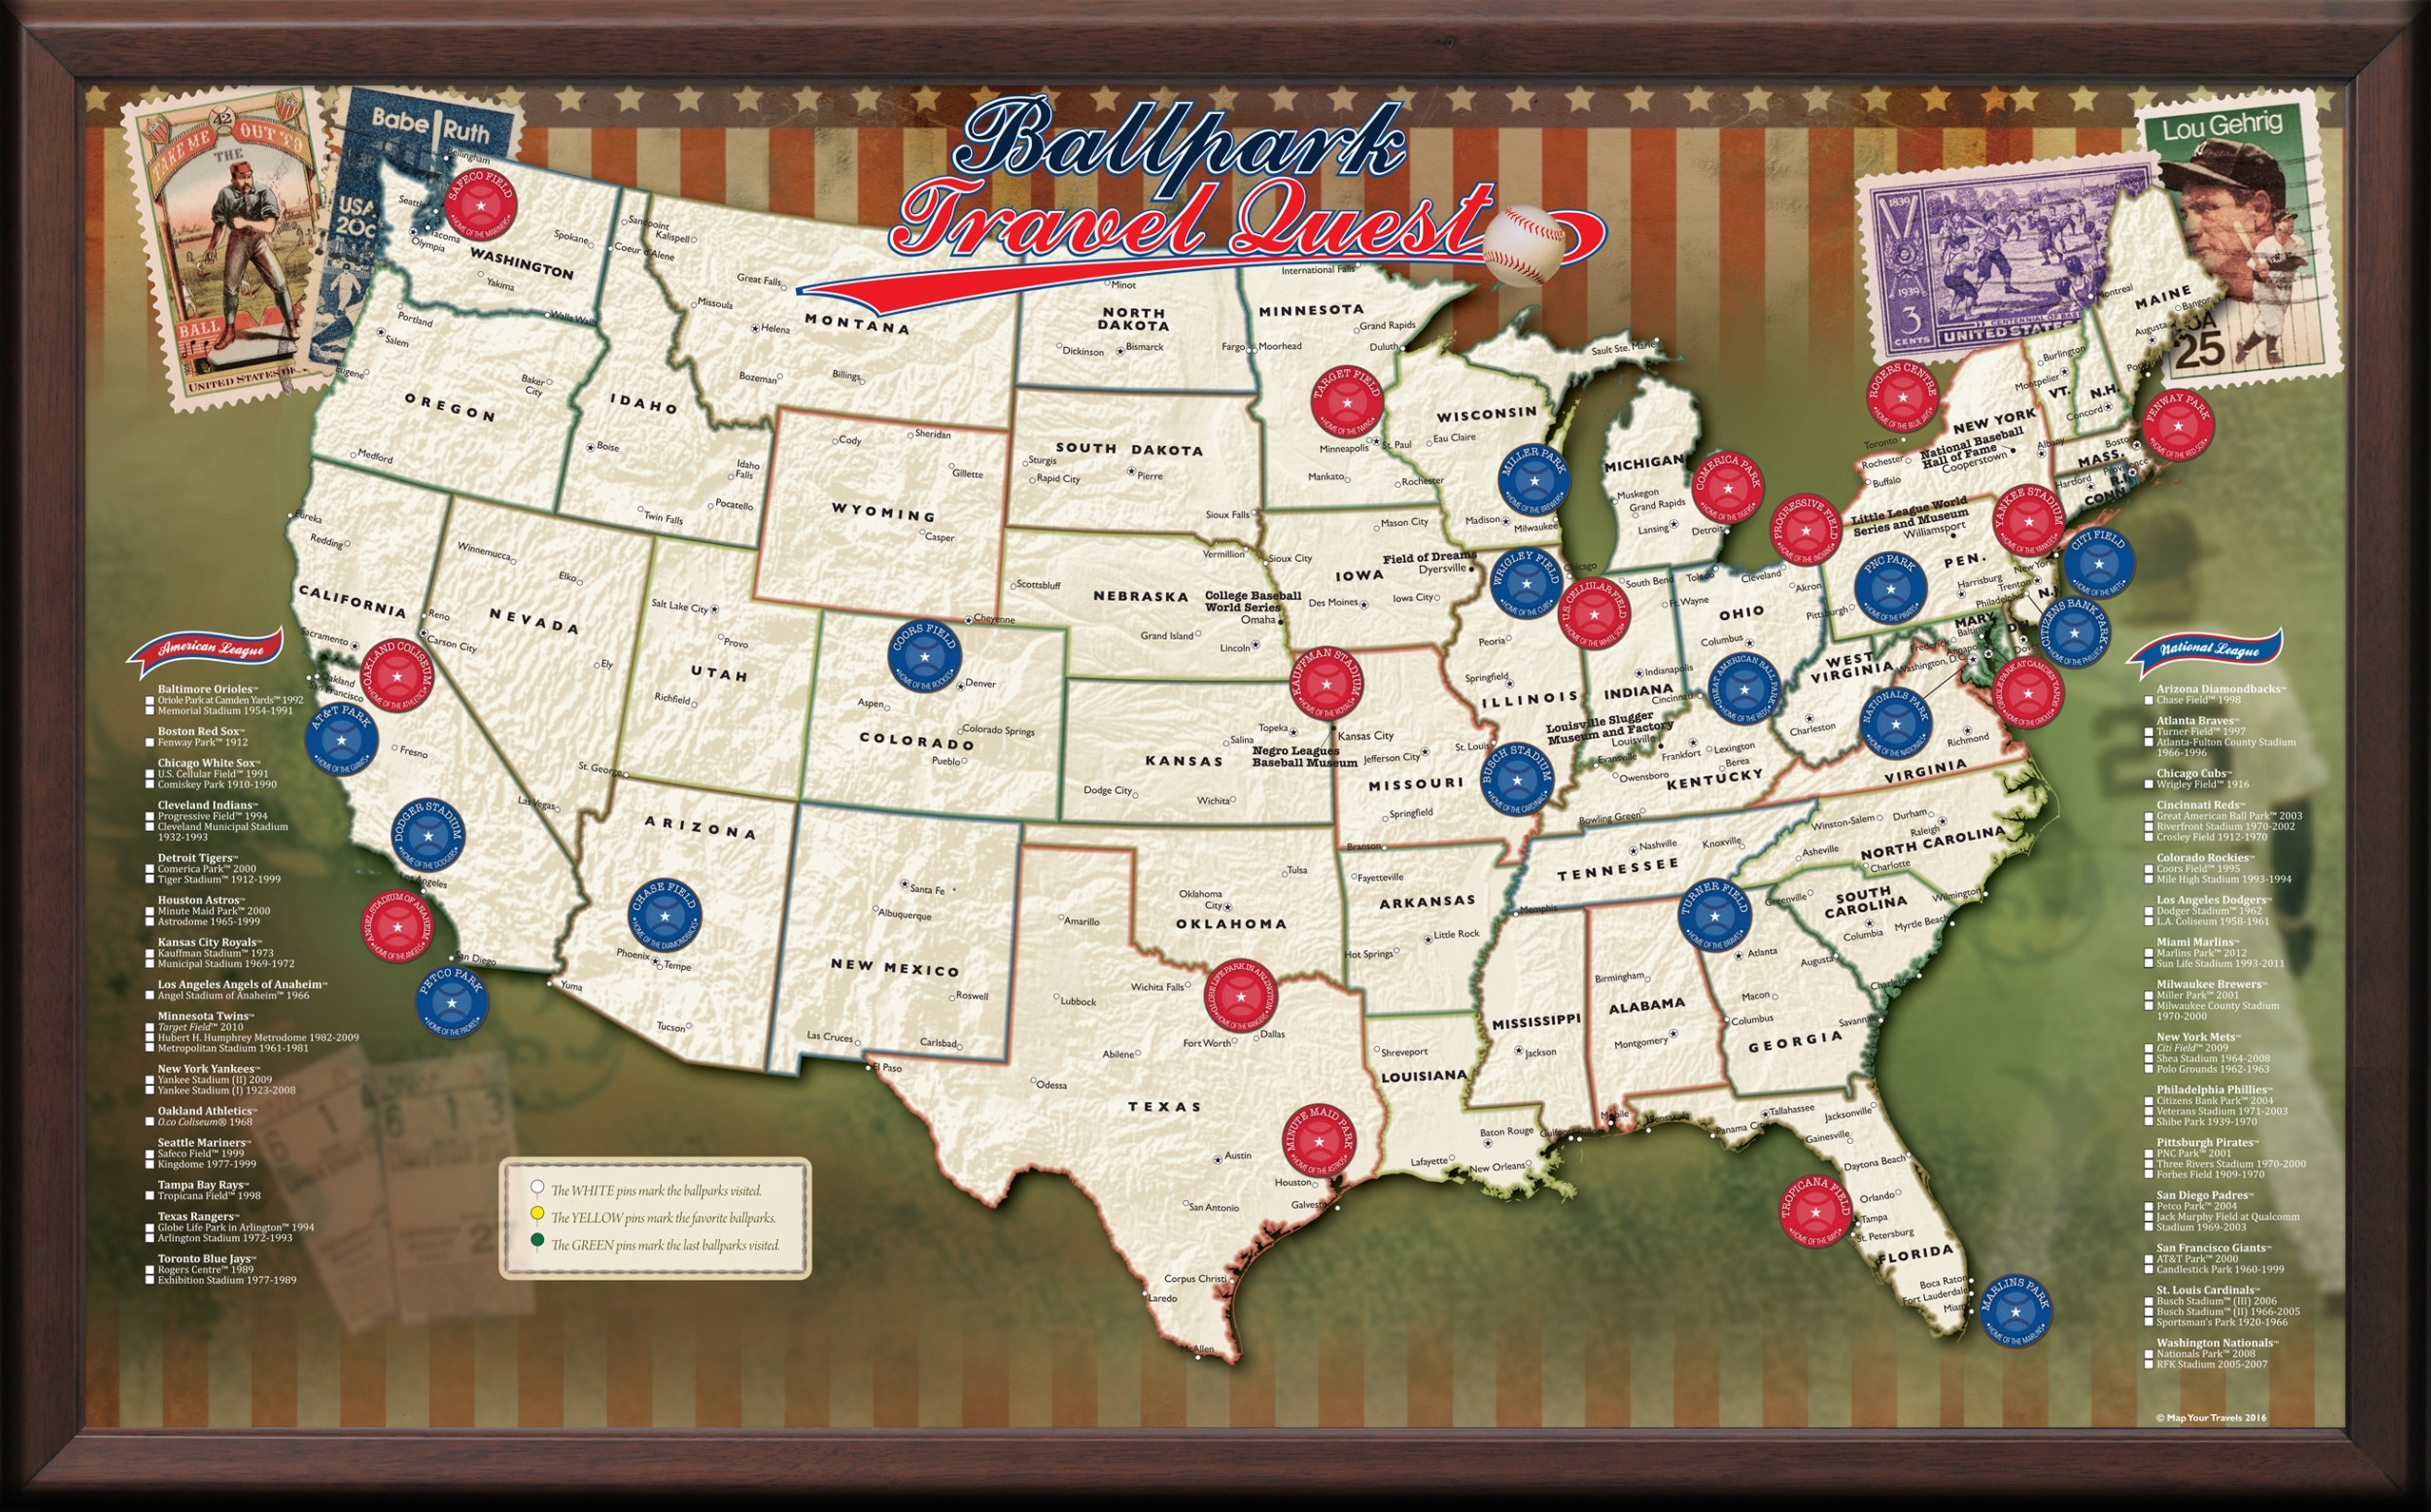 Map Of Major League Baseball Teams In Us Pictures To Pin On - Map of us baseball teams